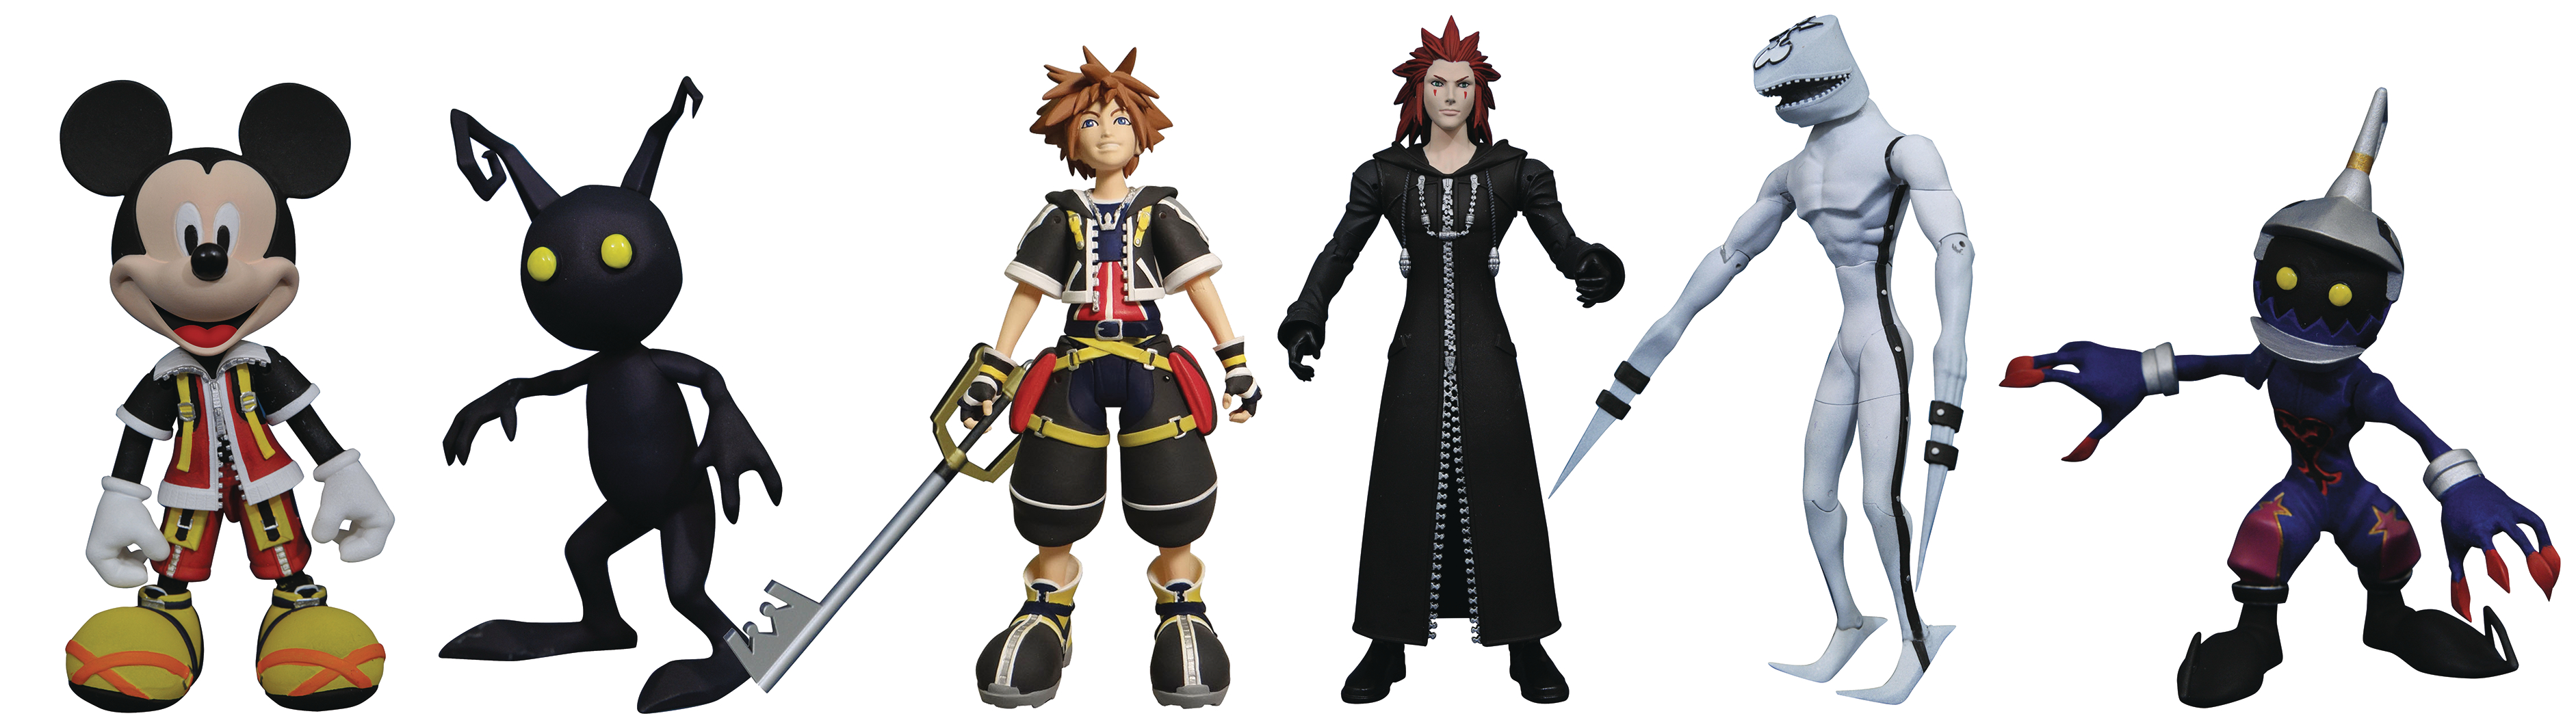 KINGDOM HEARTS SELECT AF SERIES 1 ASST